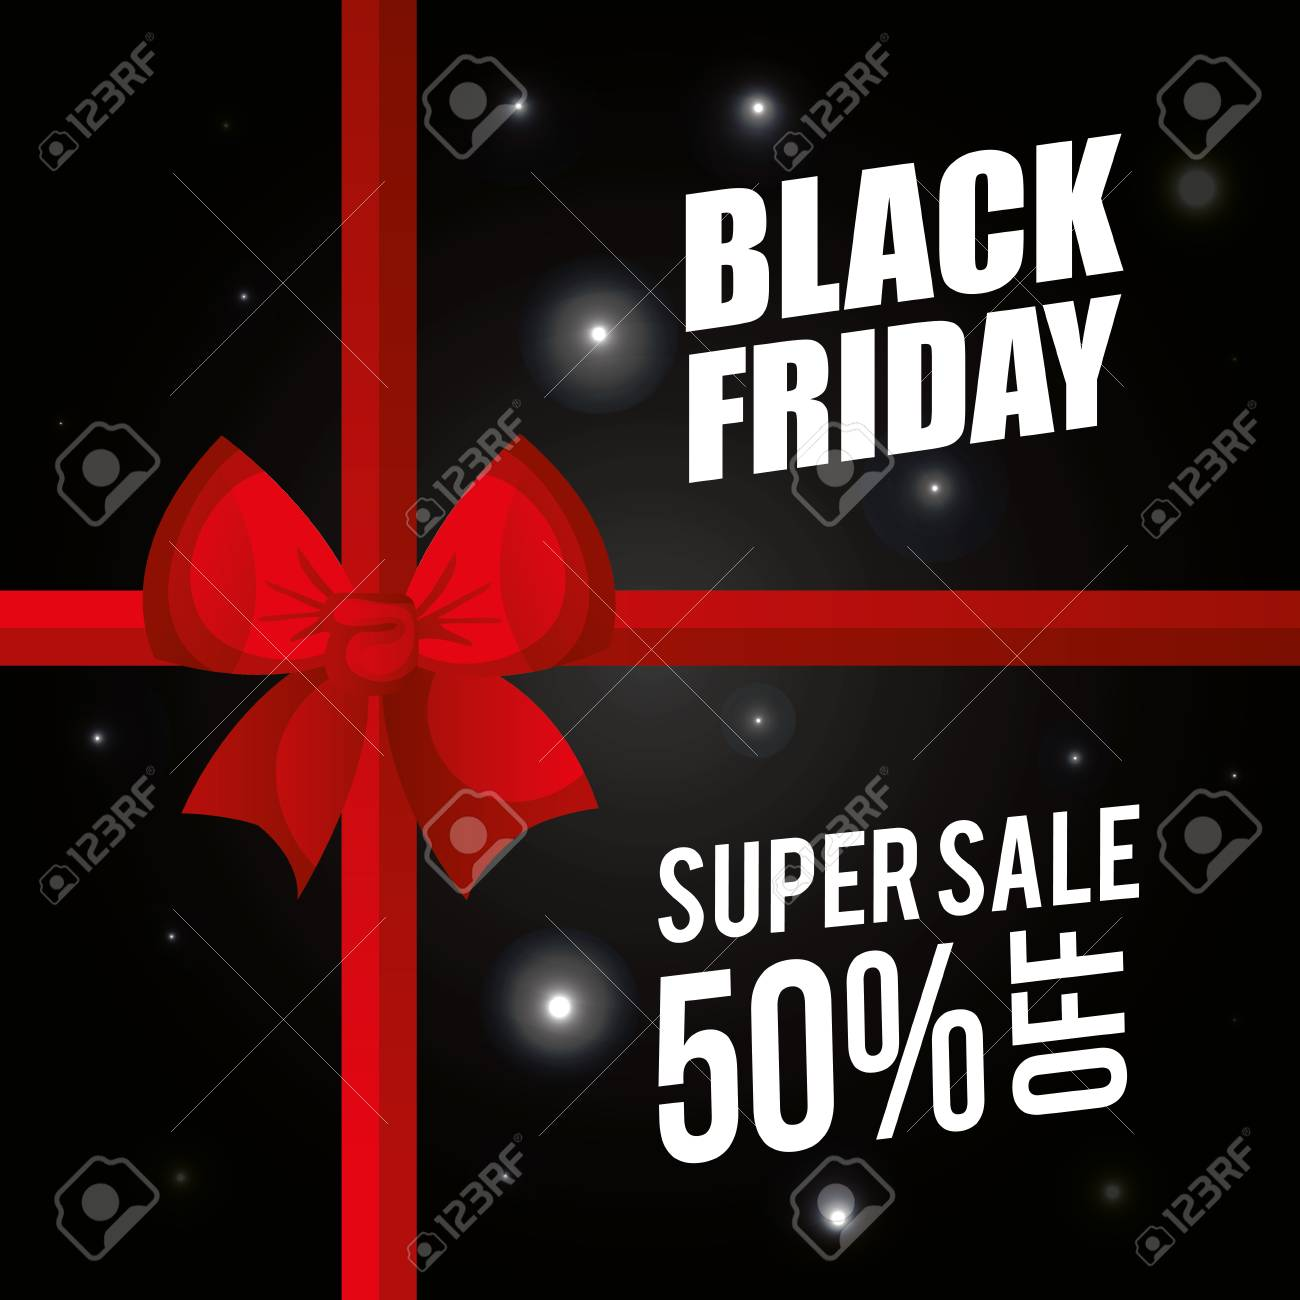 Black Friday Promotion Label Vector Illustration Design Royalty Free Cliparts Vectors And Stock Illustration Image 88434798